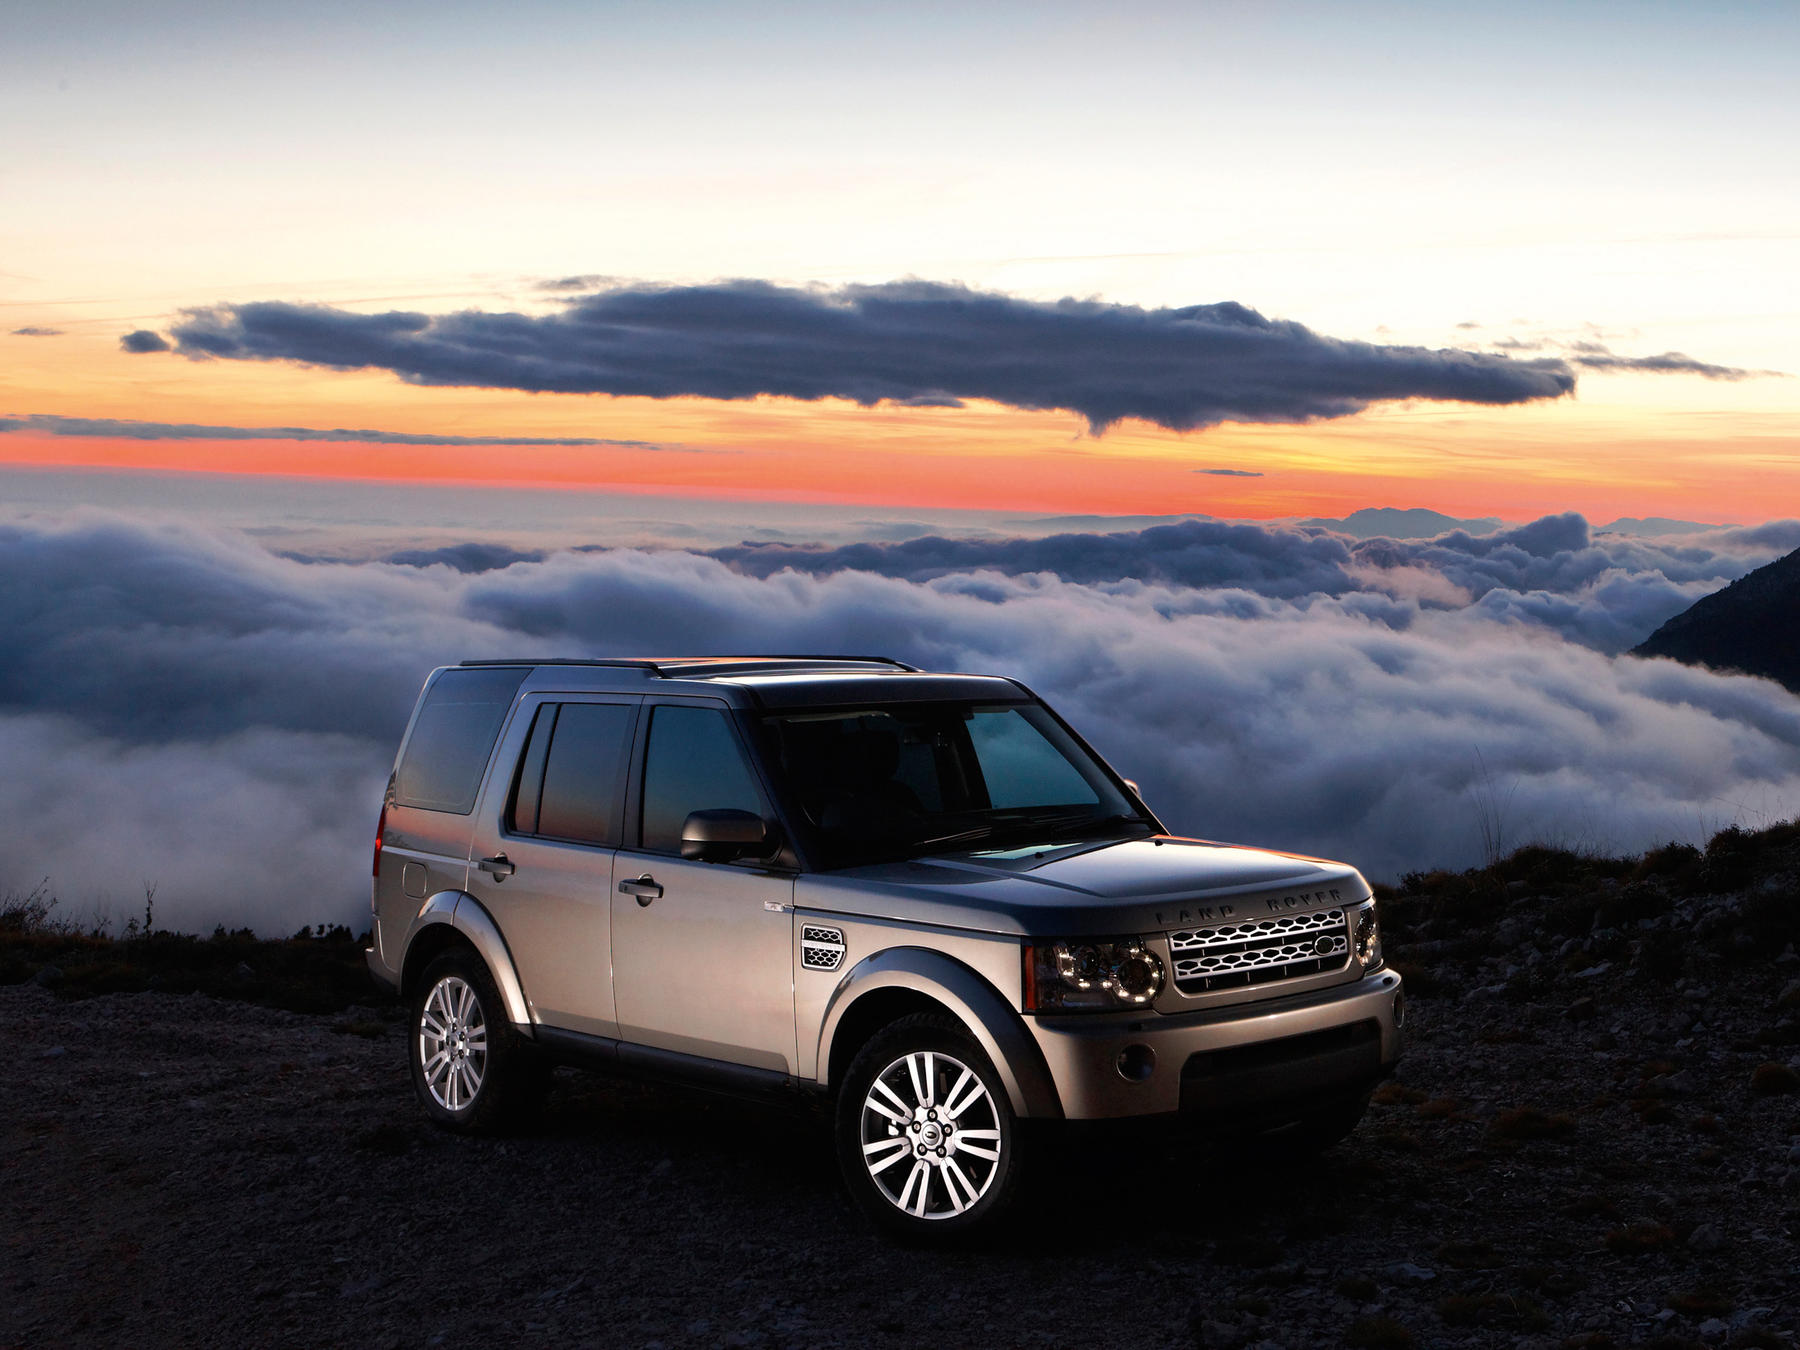 Land rover discovery wins scottish coty award - photos (1 of 5)